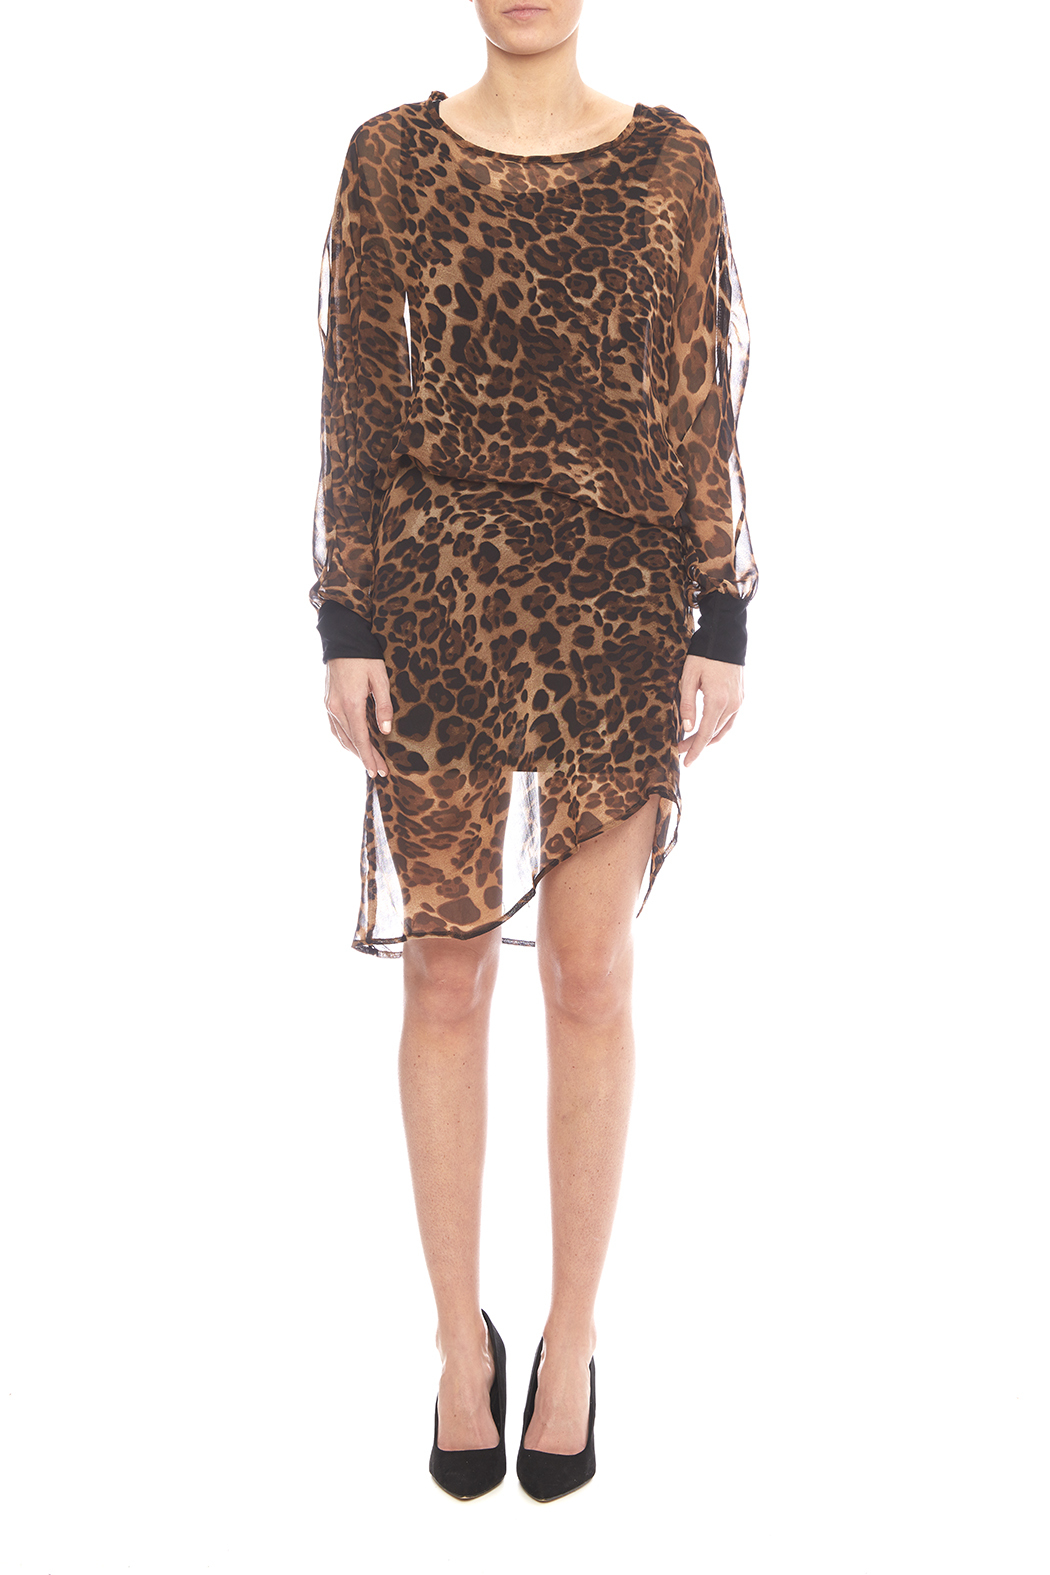 NU New York Chiffon Leopard Dress - Side Cropped Image